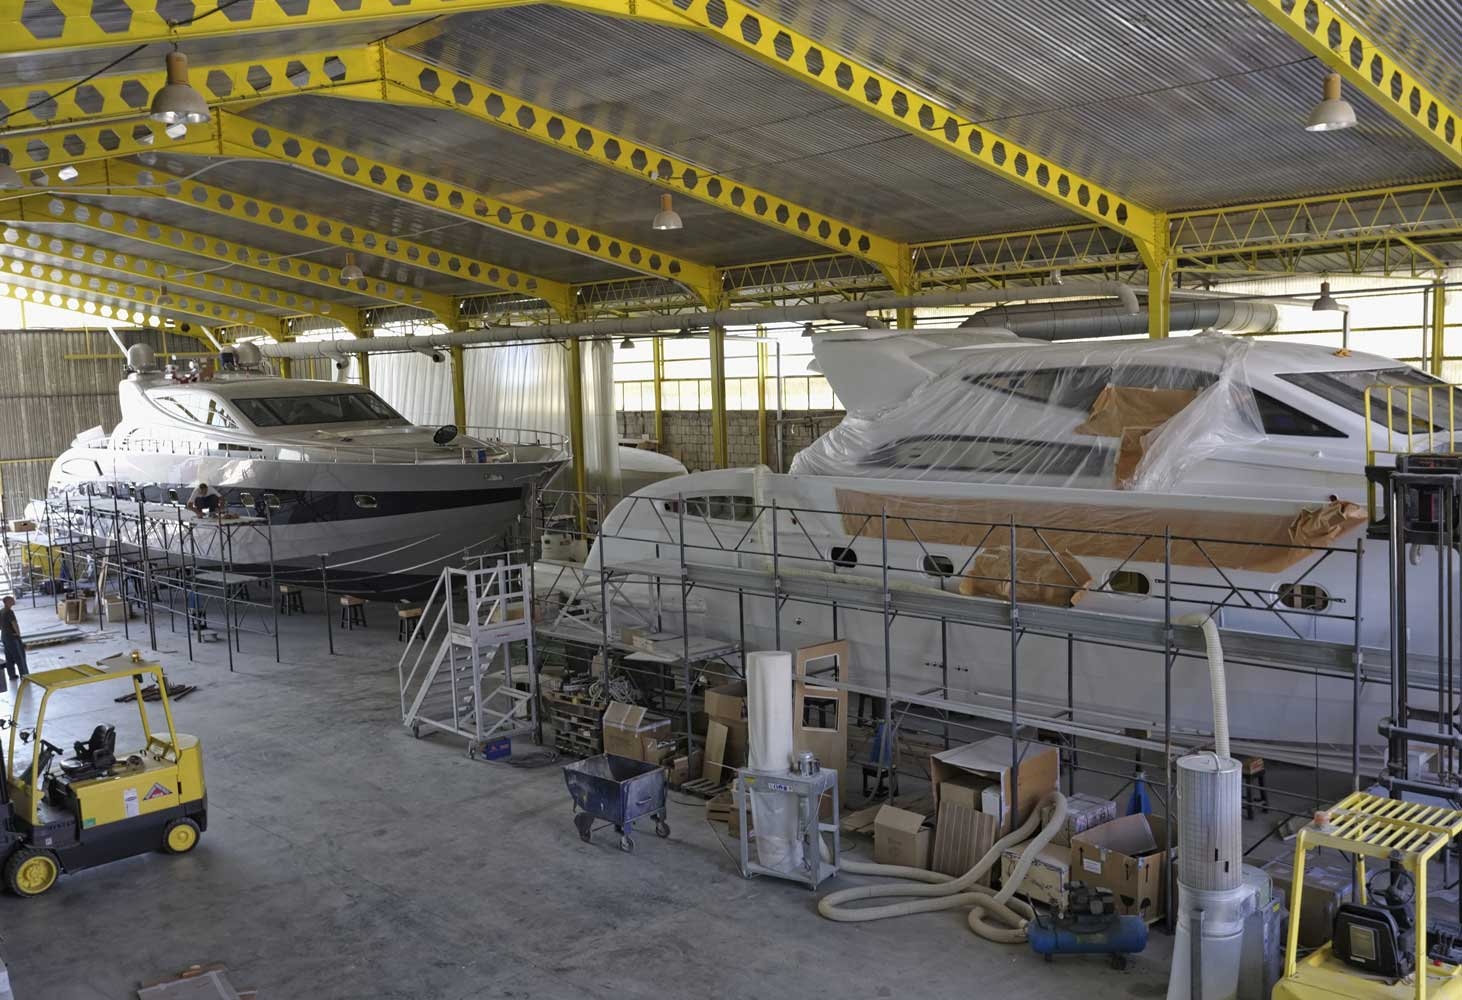 The Marine and Boating Industry Keeping Afloat with R&D Tax Credits